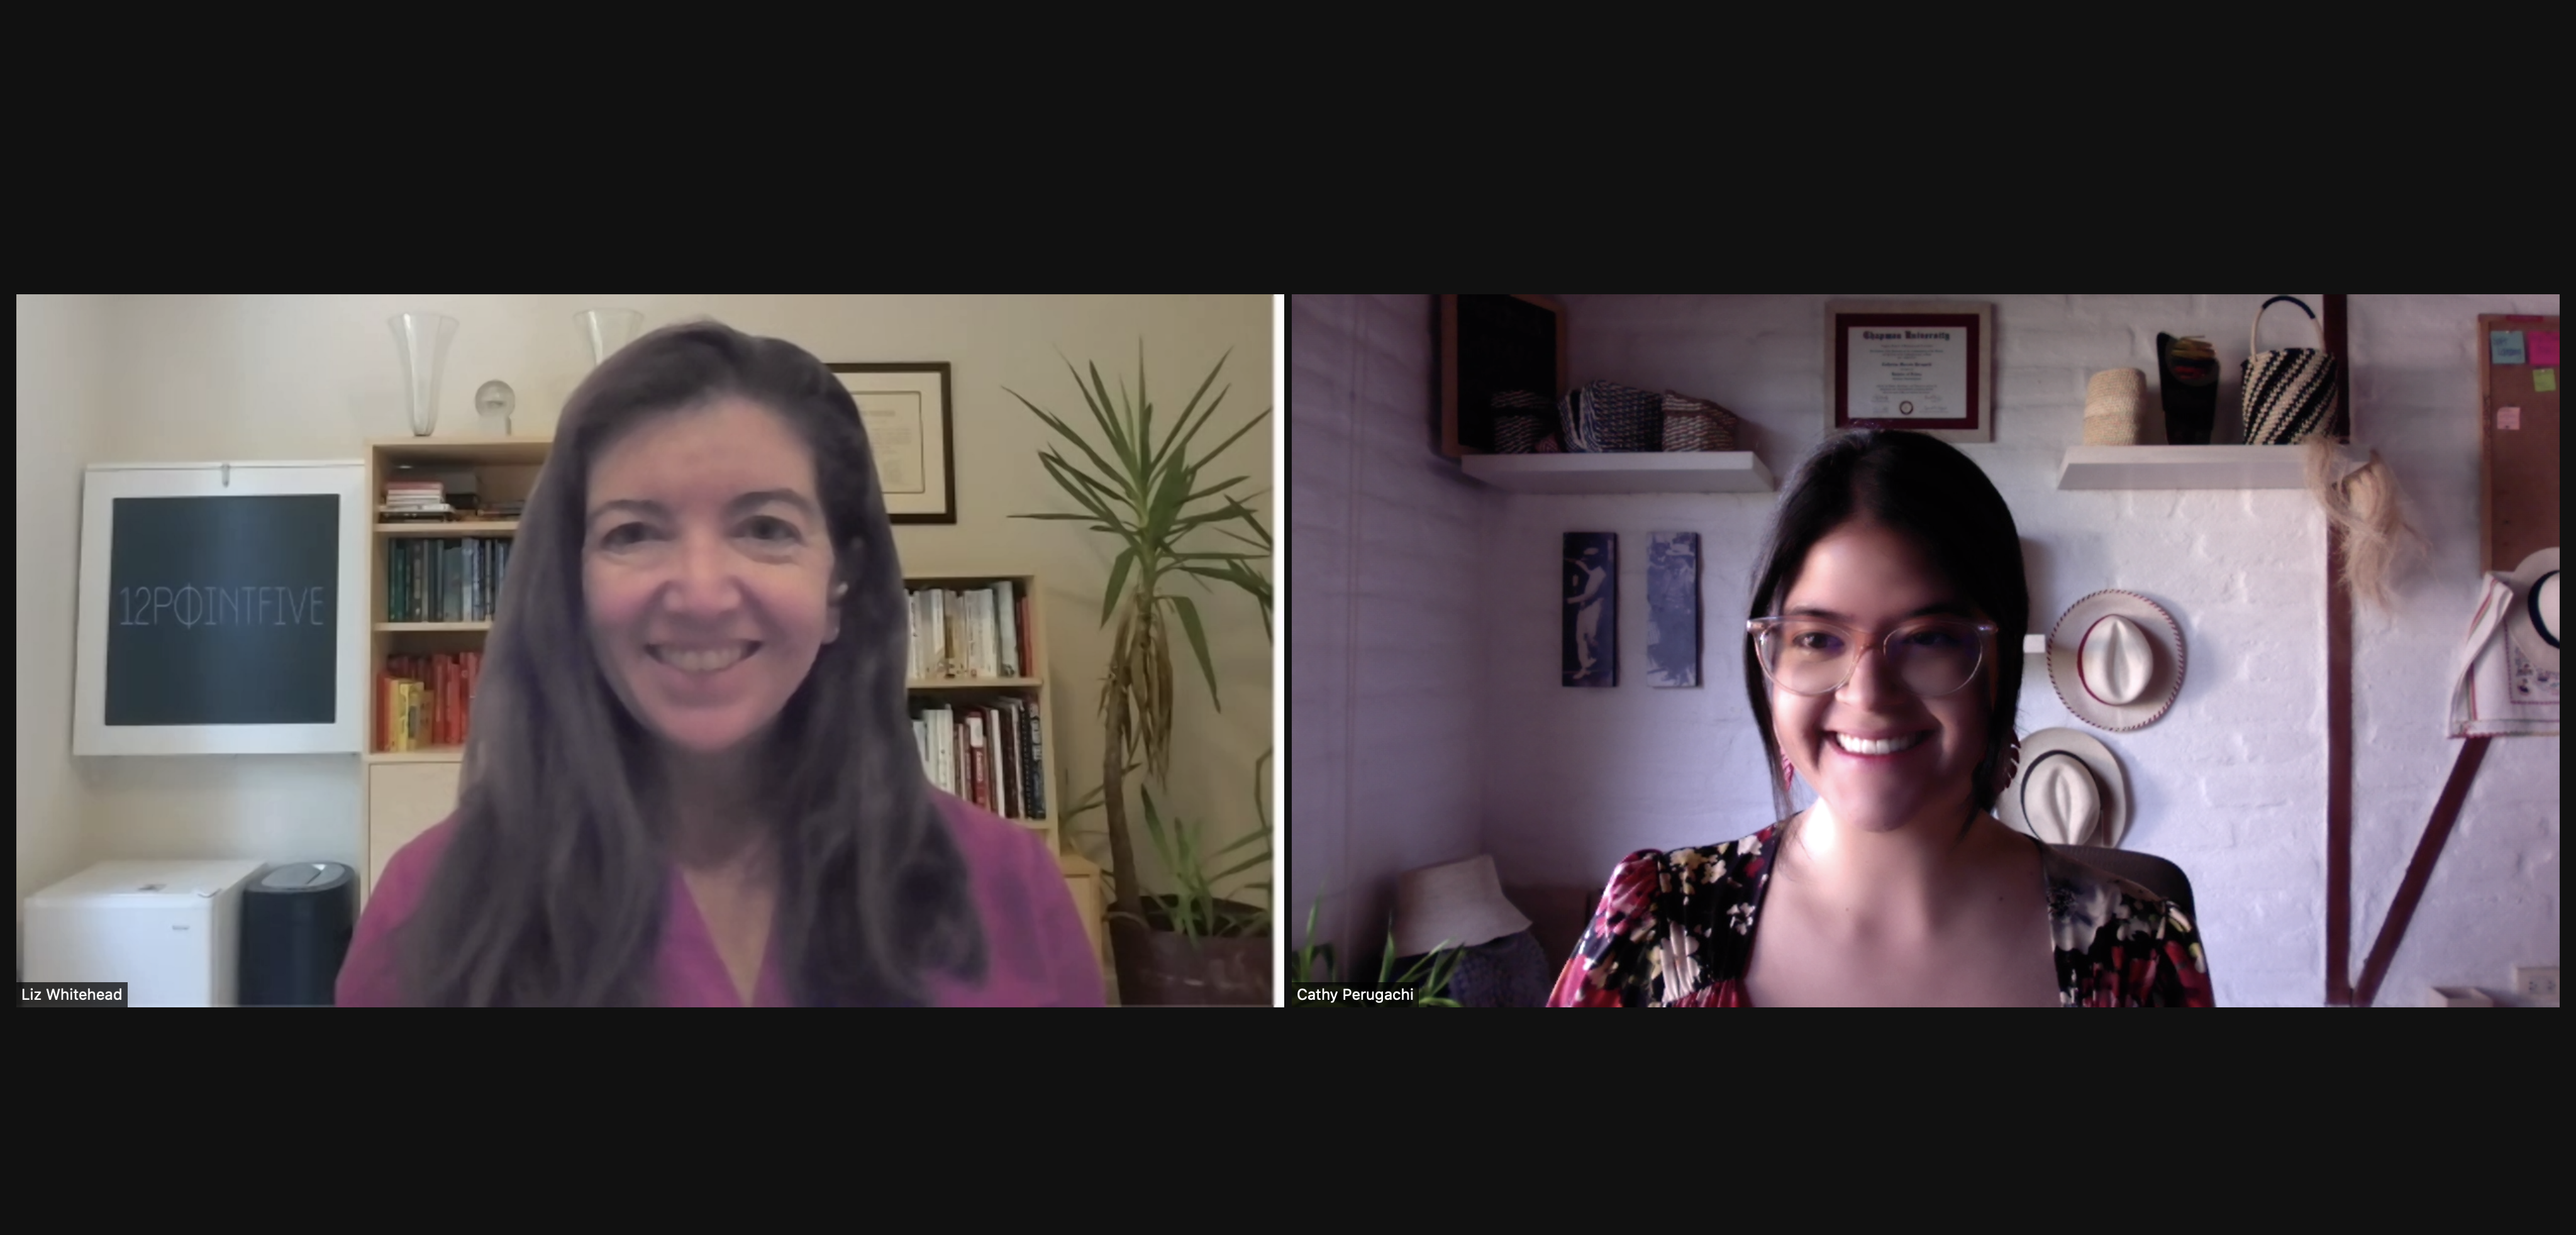 A zoom screenshot of Liz Whitehead and Cathy Perugachi smiling and collaborating from the U.S. and Ecuador, respectively